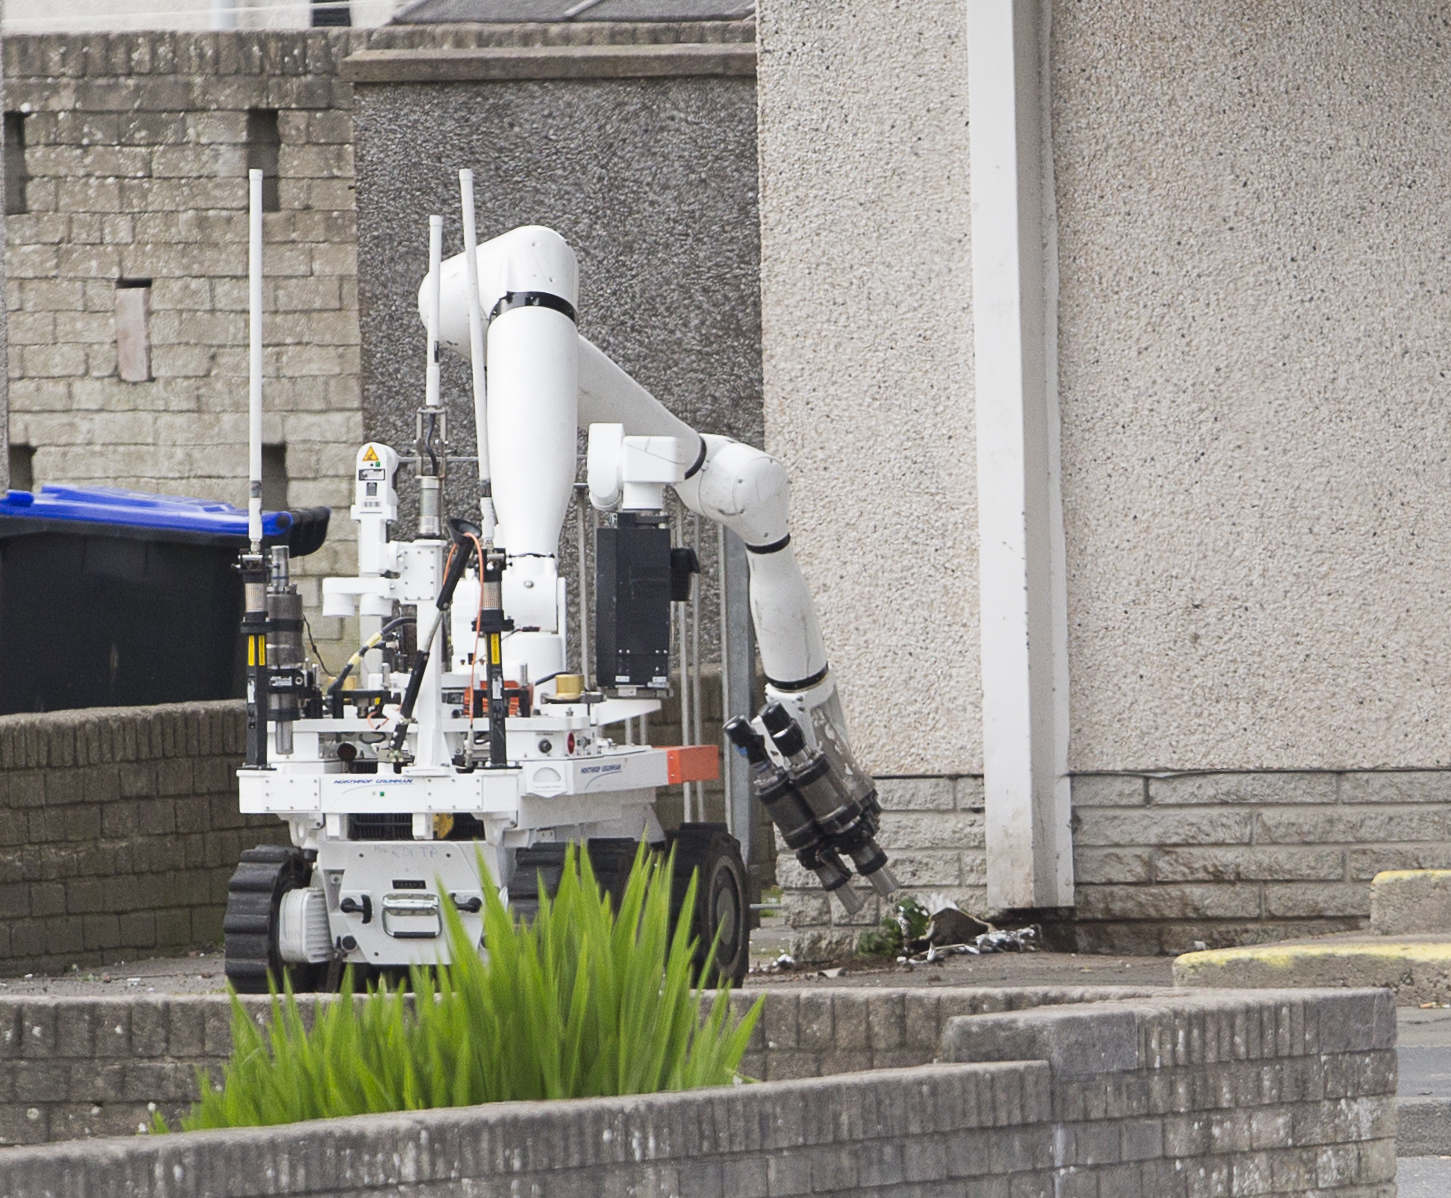 Bomb disposal experts were drafted in after a suspicious package was discovered in Fraserburgh's Buchan Road.